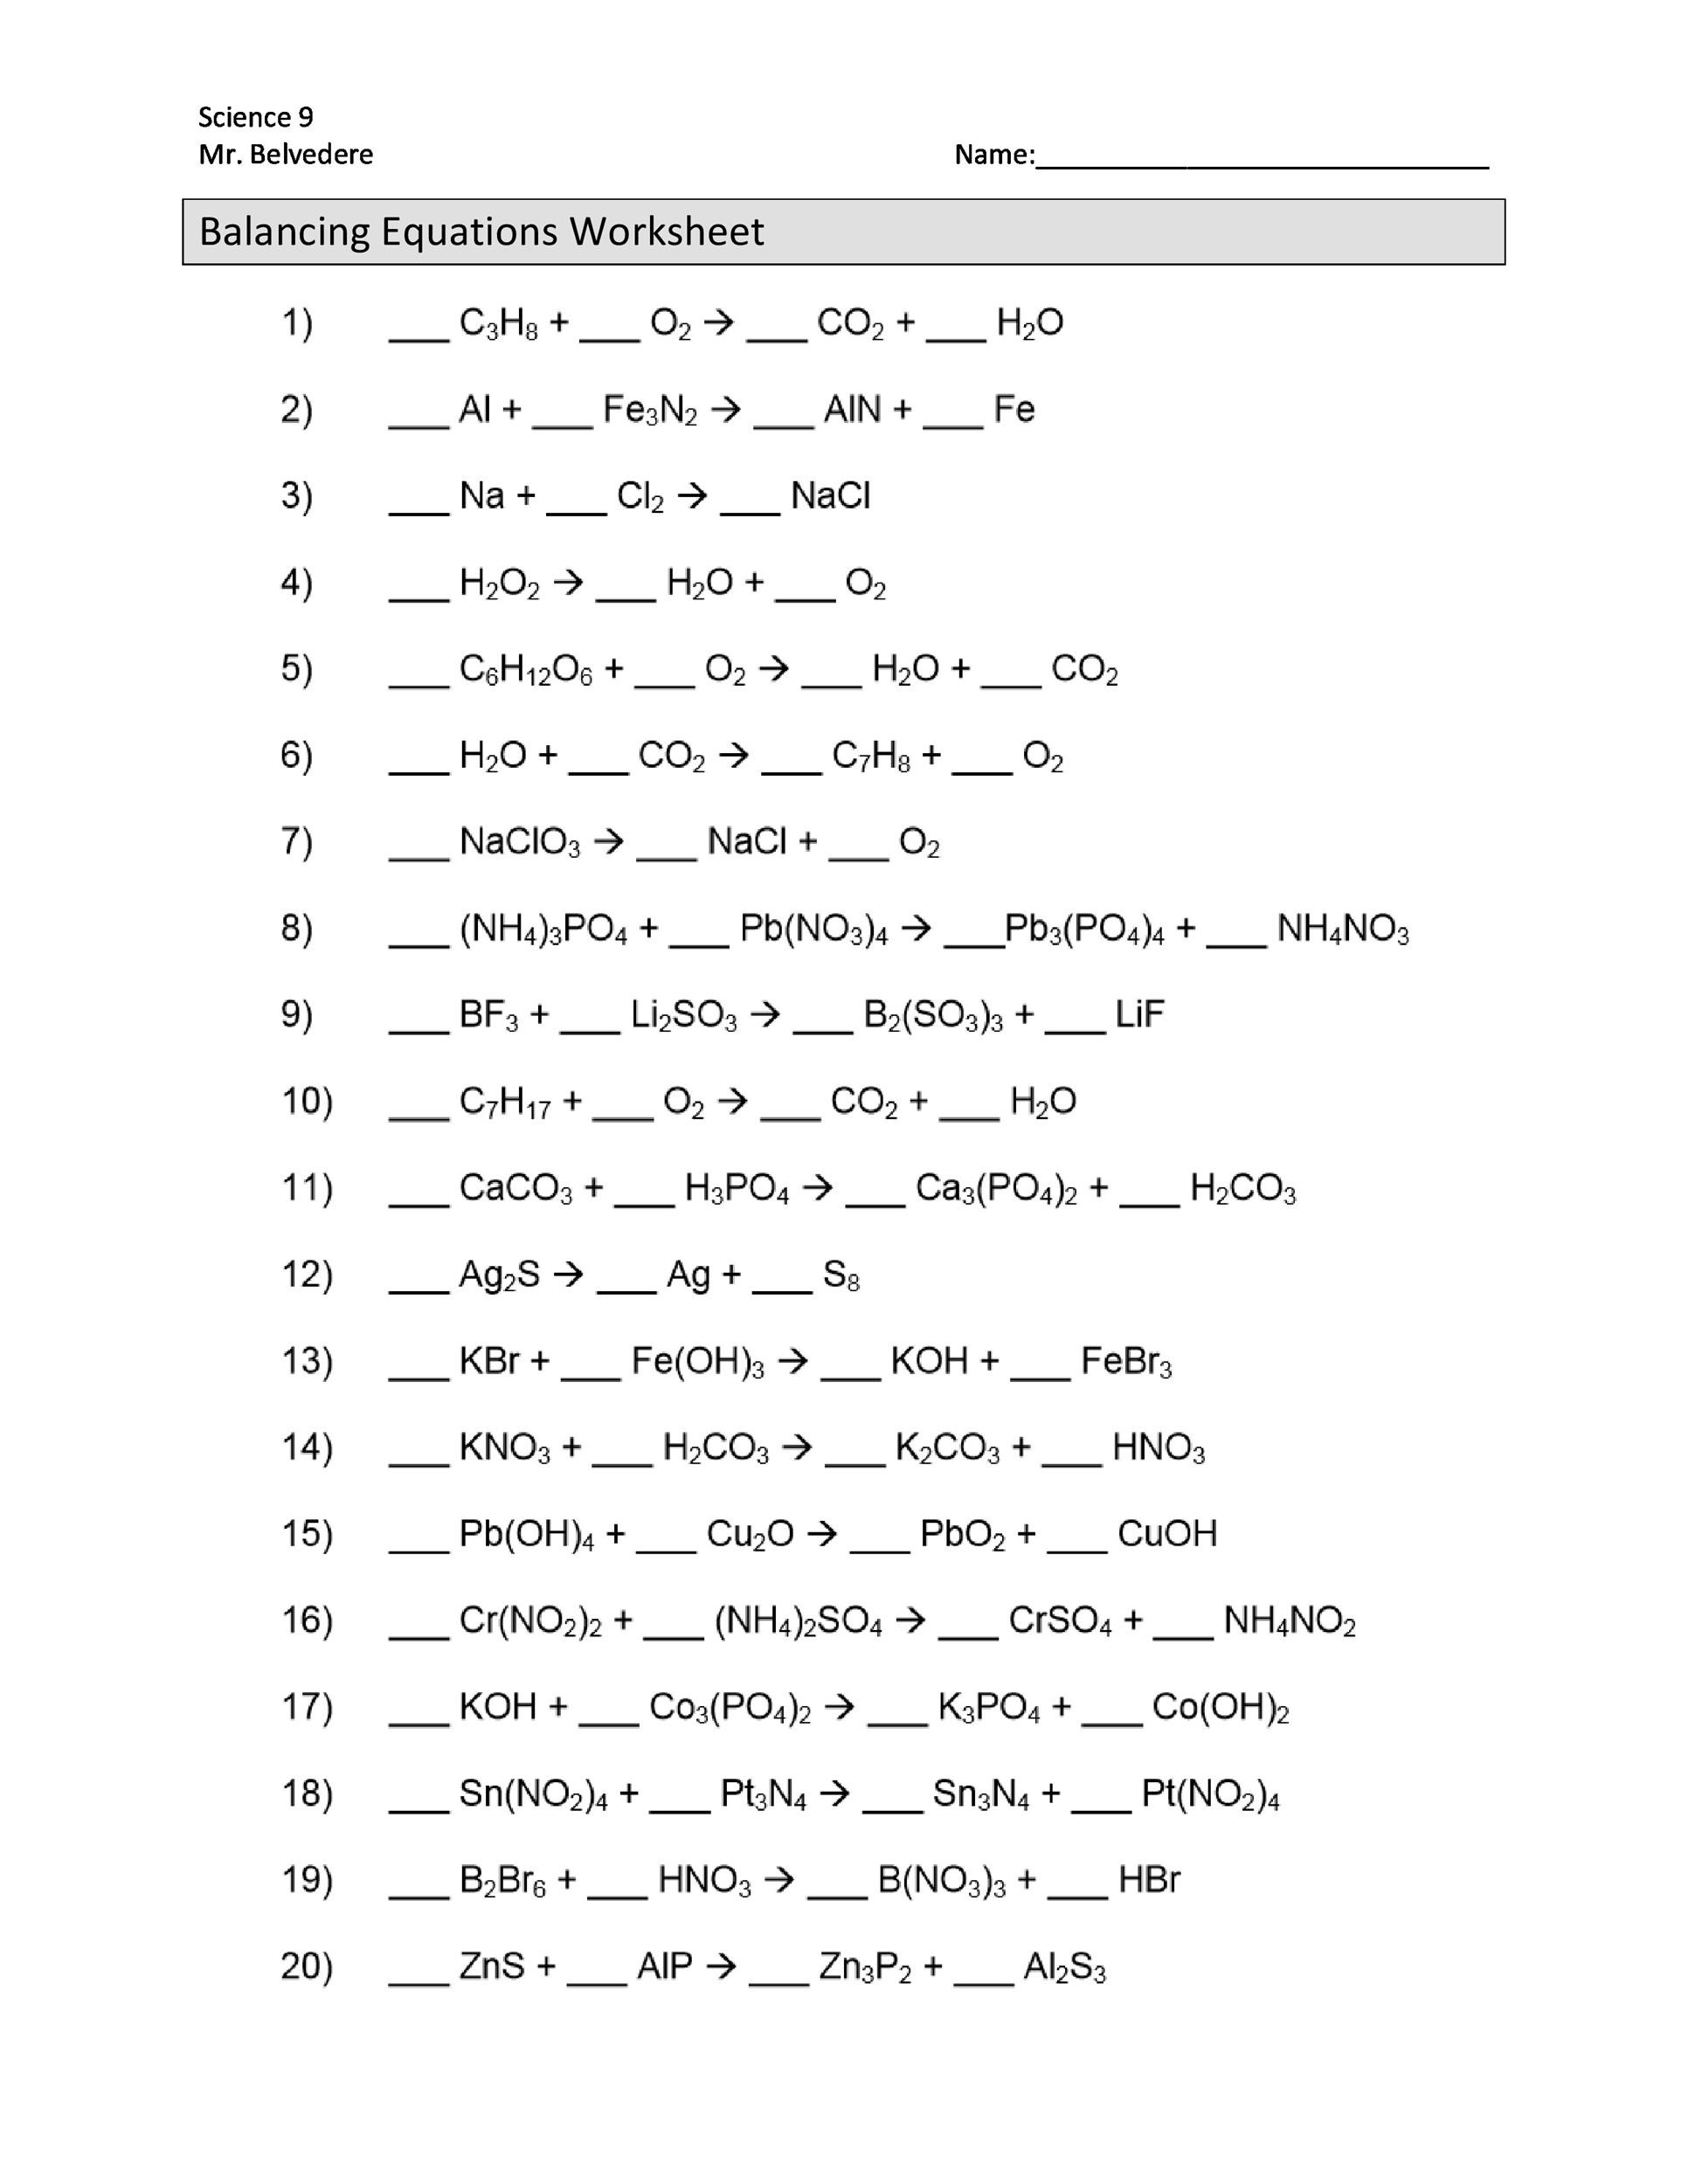 8th Grade Chemistry Worksheets Balancing Chemical Equations Worksheets with Answers 8th